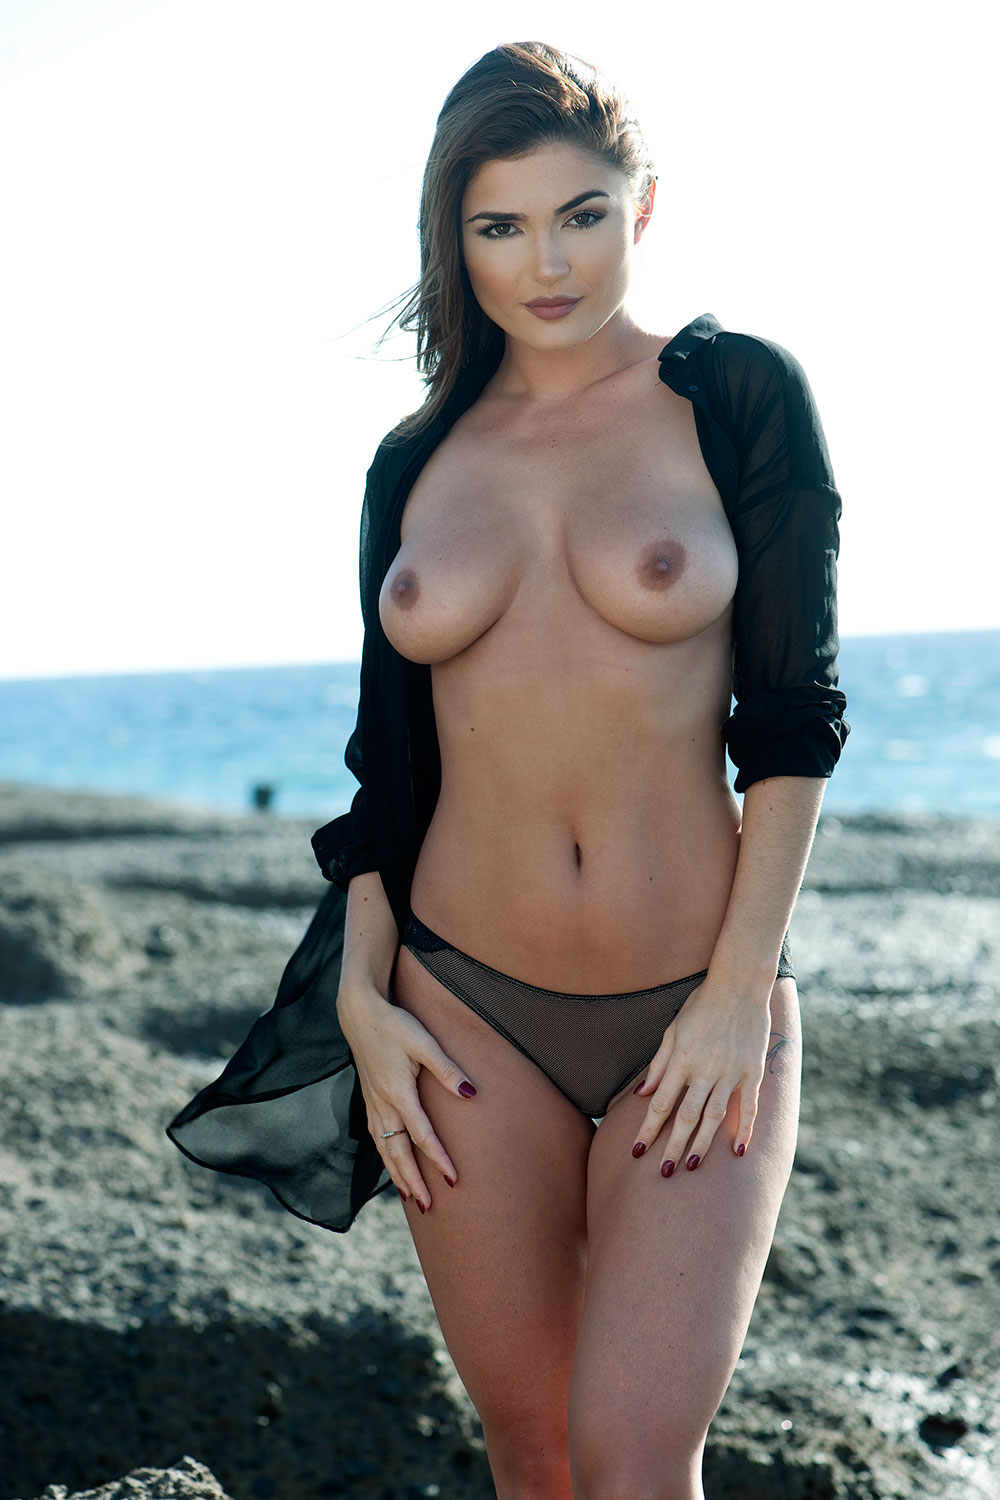 Topless Photos Of India Reynolds Thefappening